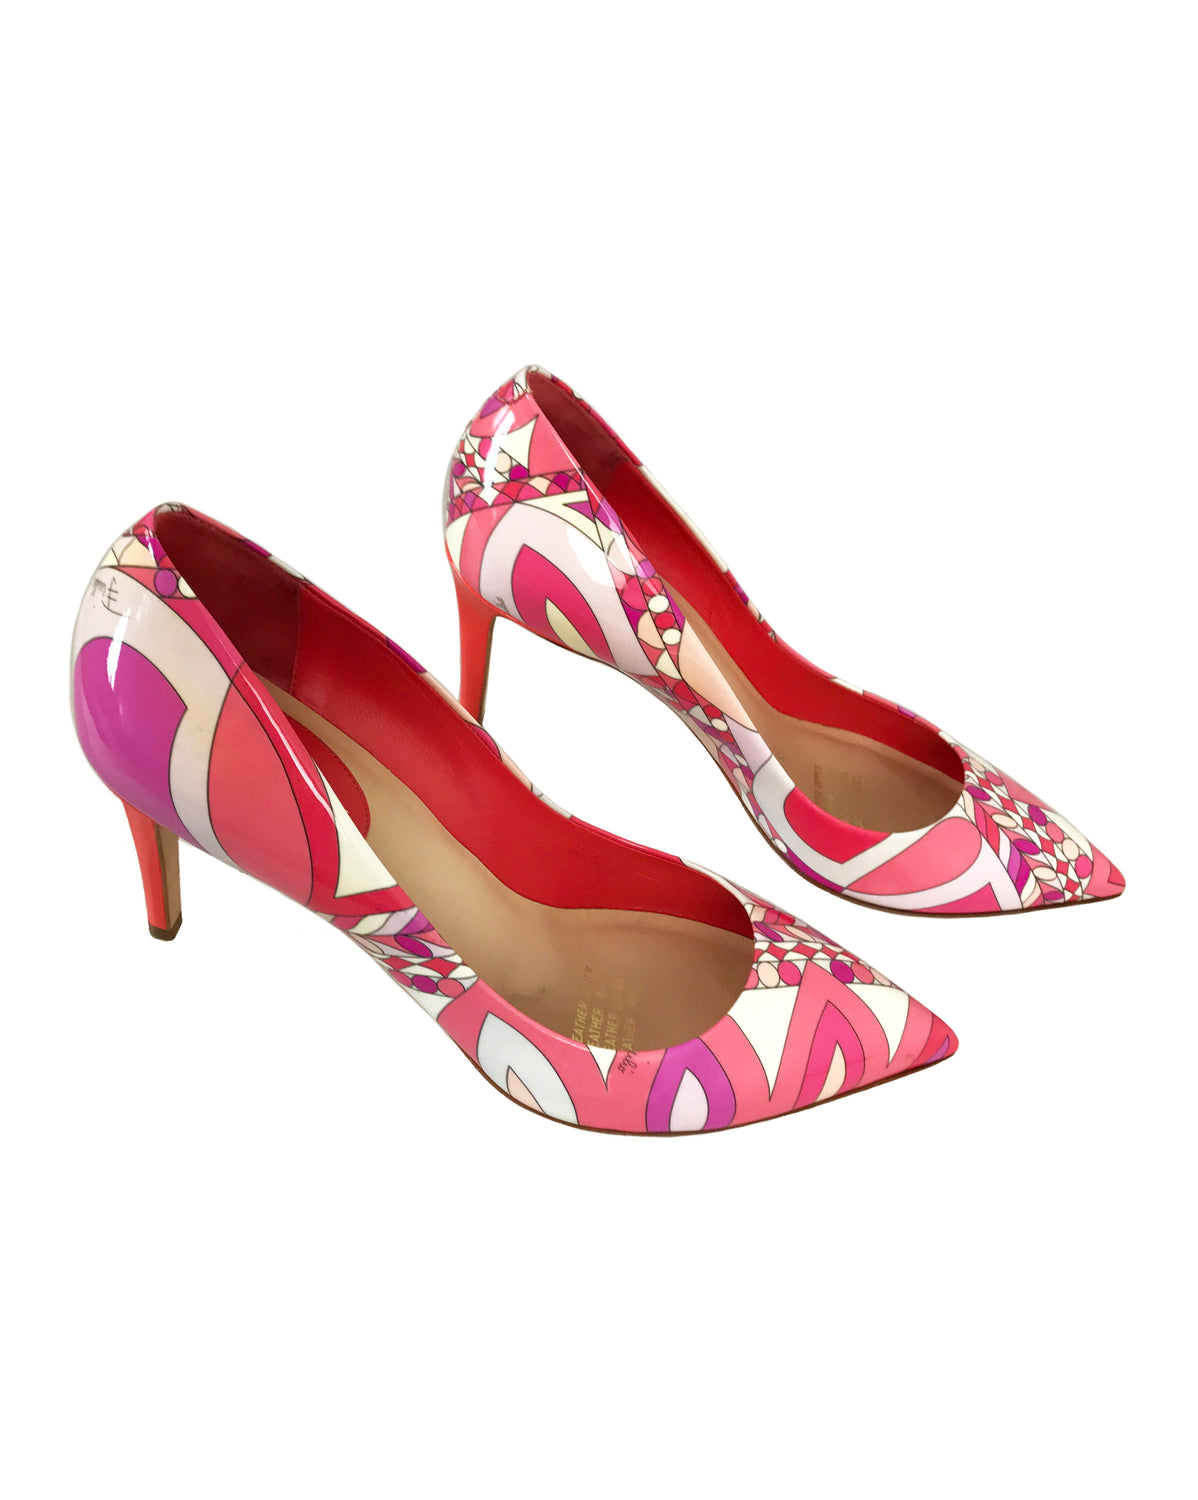 FRUIT Vintage Emilio Pucci Pink Print High Heels shoes